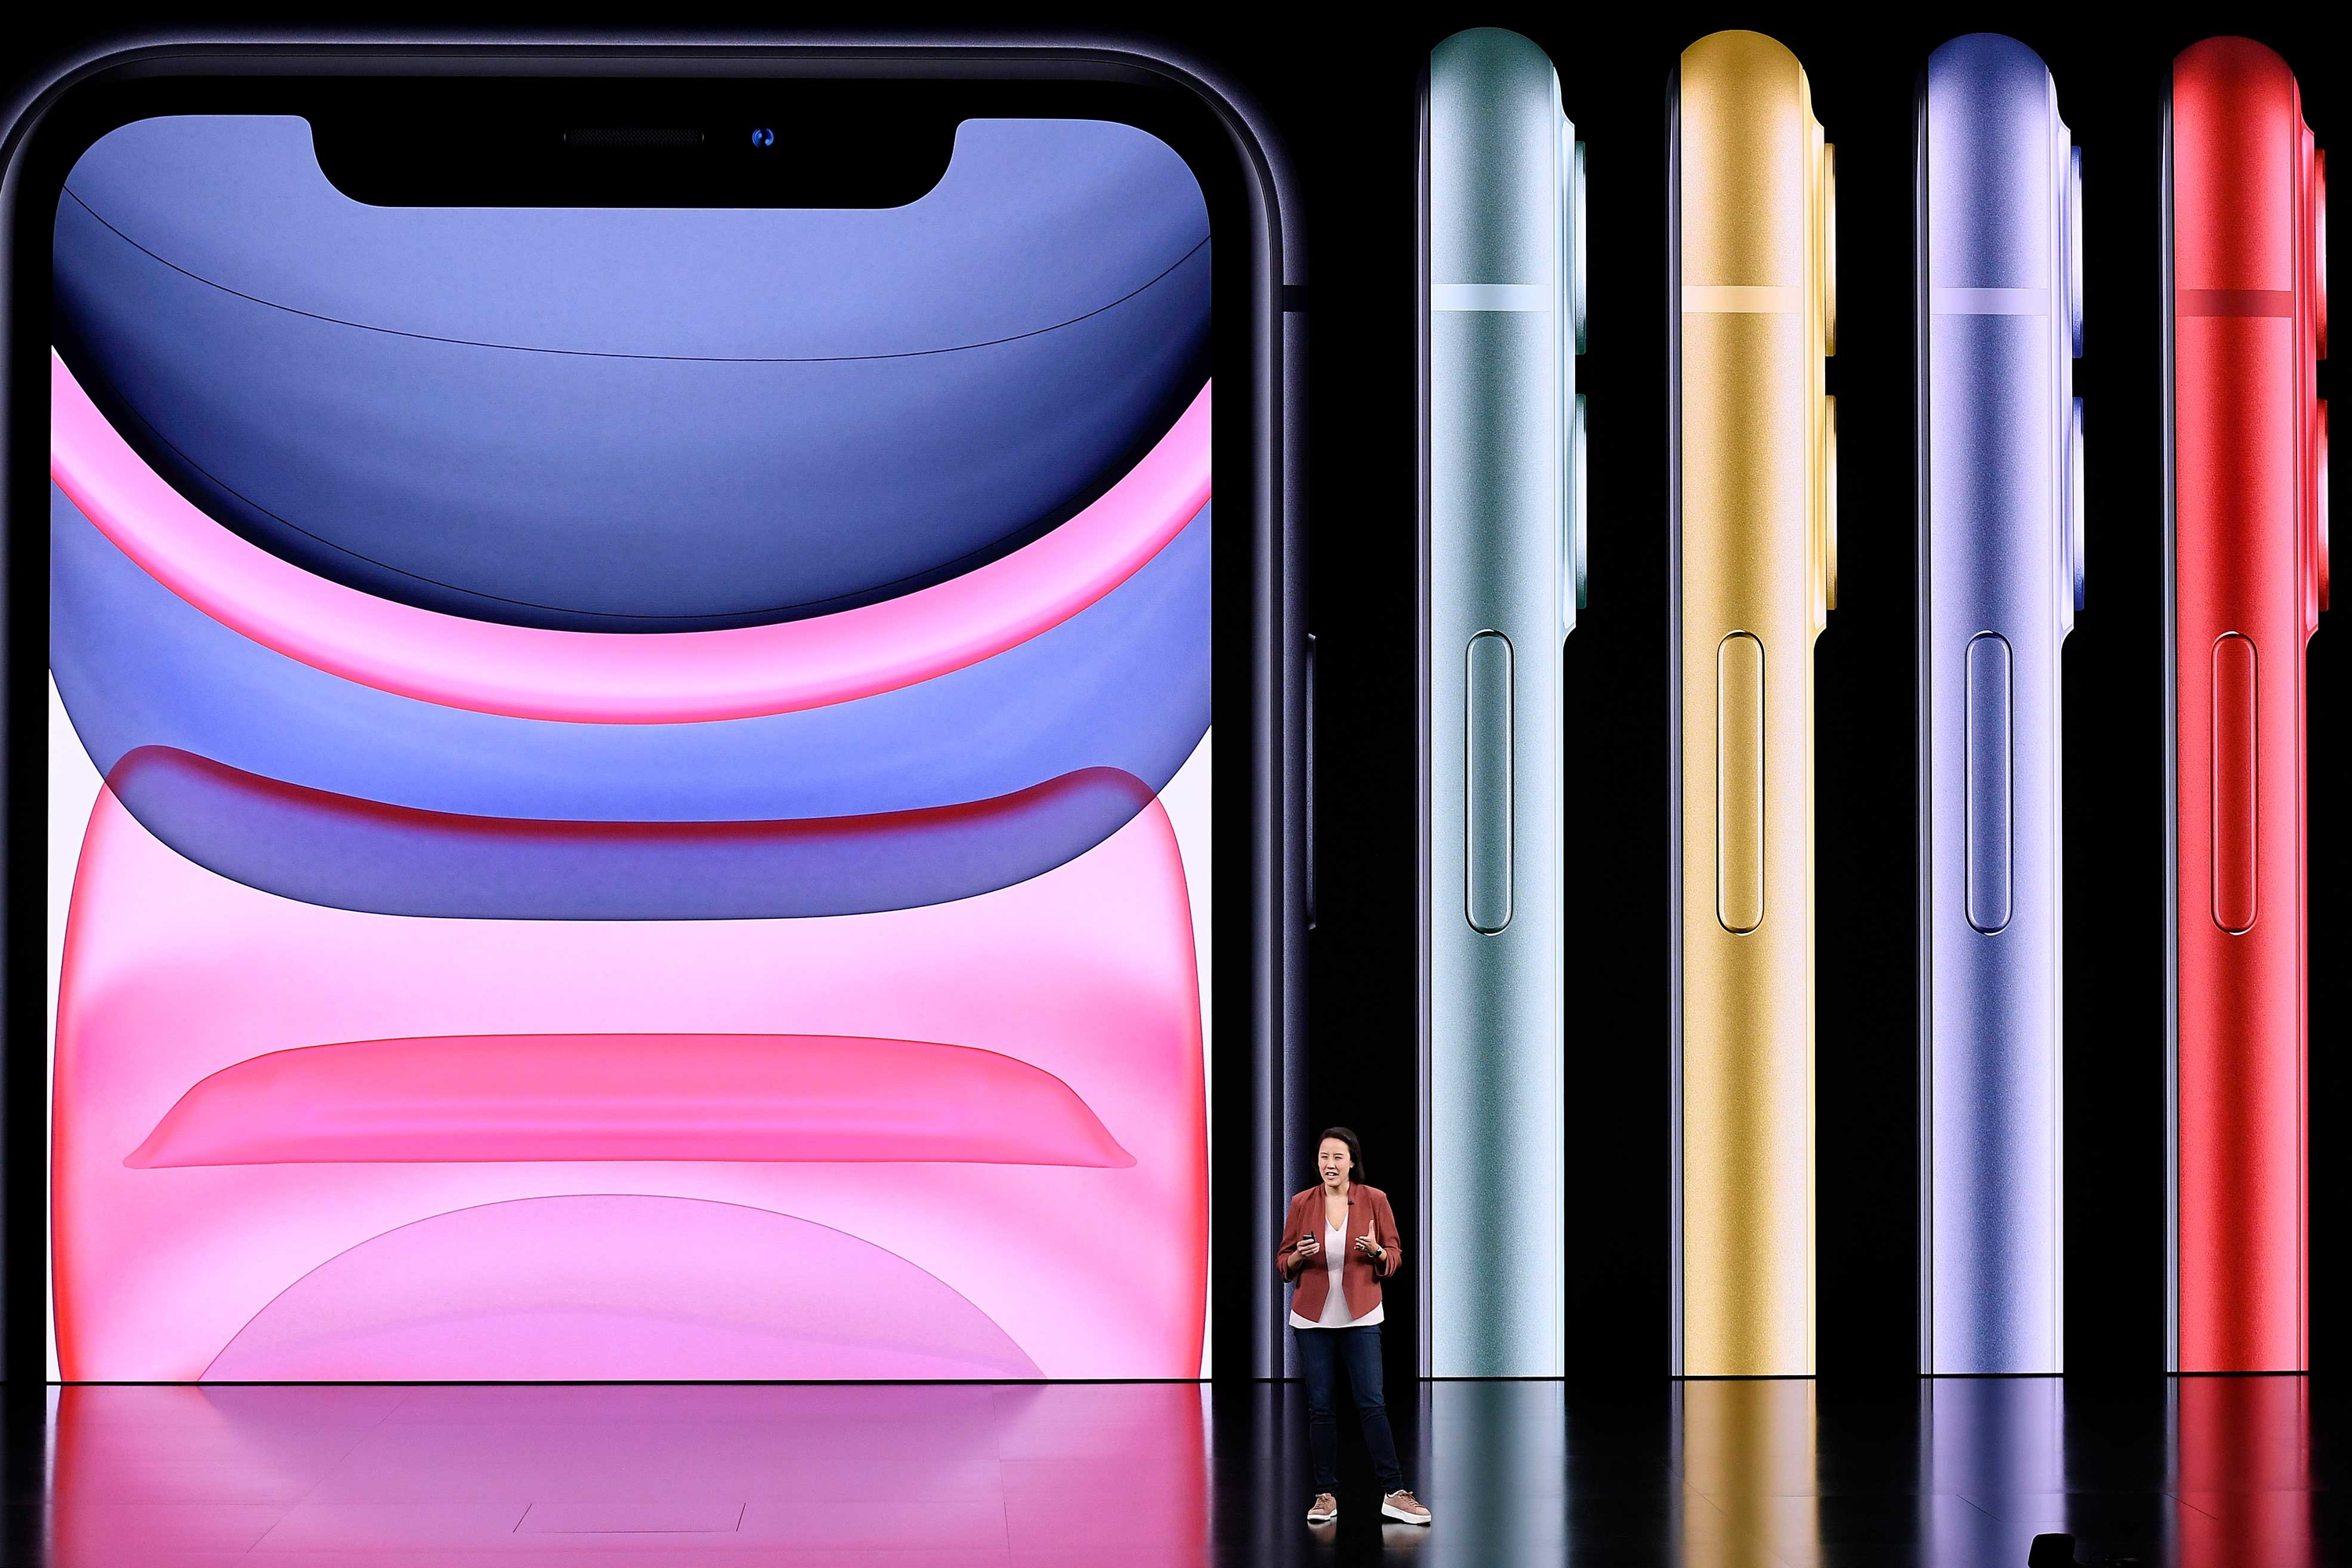 Apple's iPhone event included new watches, iPads, TV pricing and 'slofies'